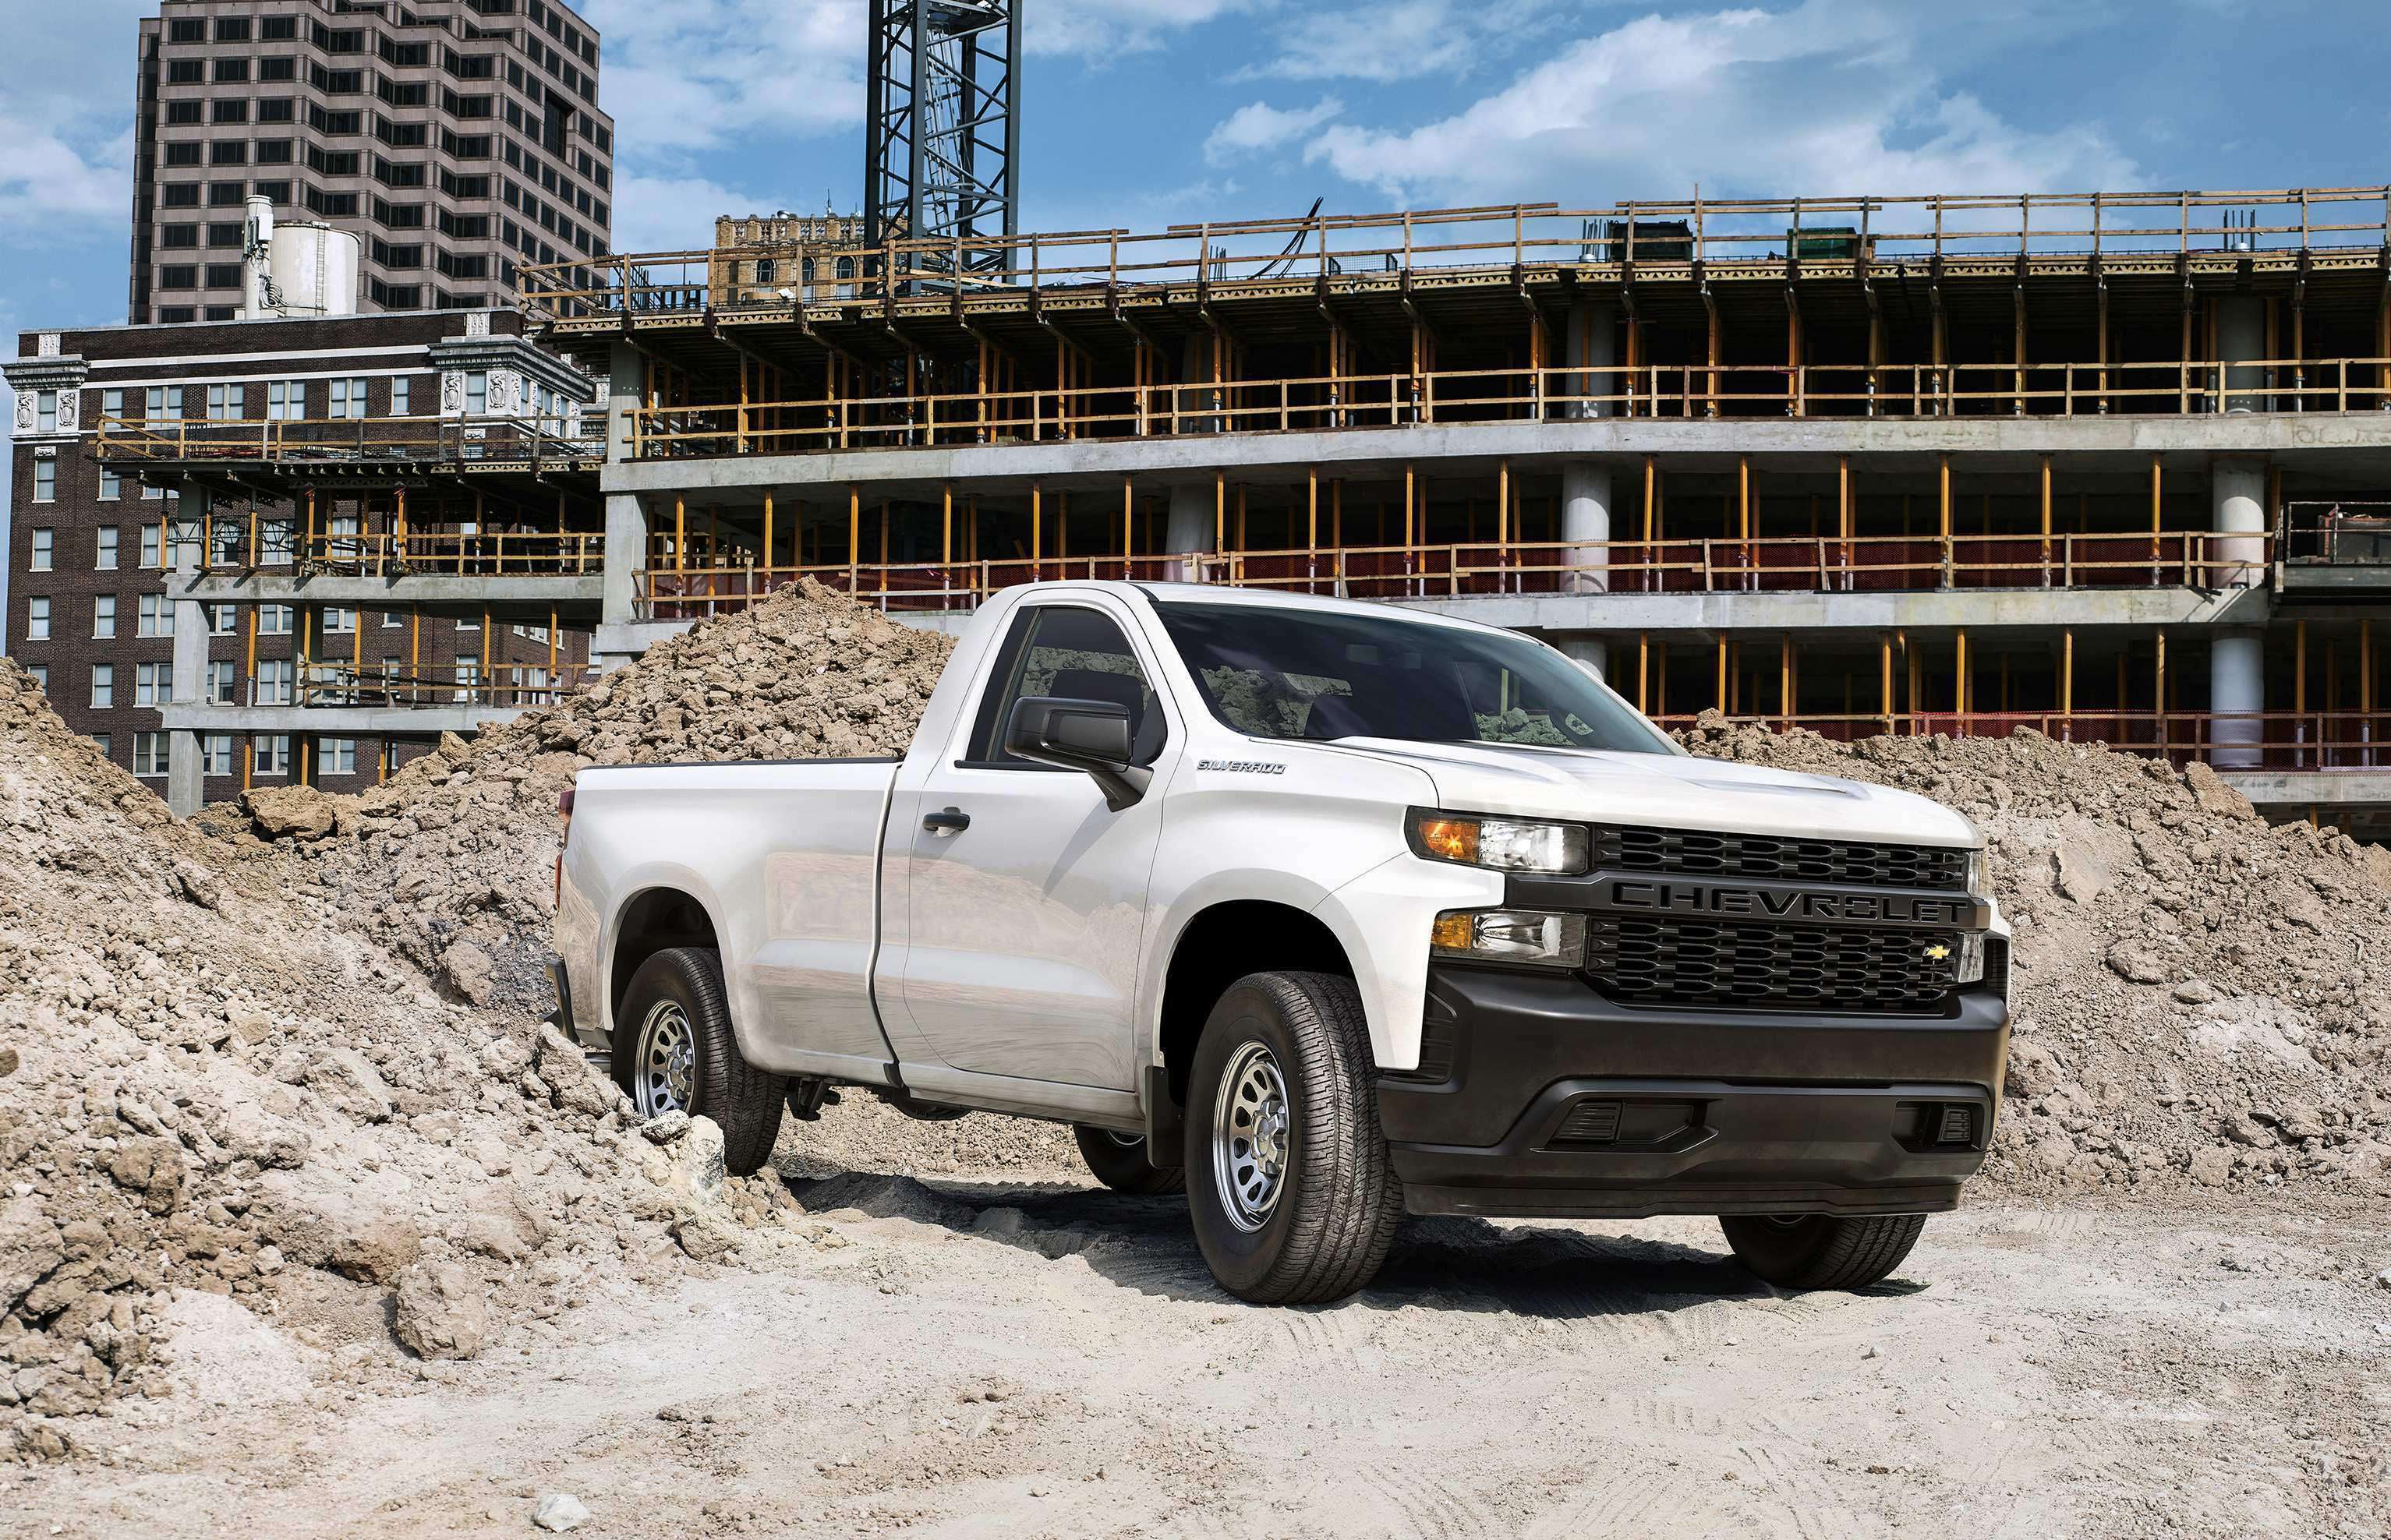 74 All New 2020 Chevy Silverado Hd Concept And Review